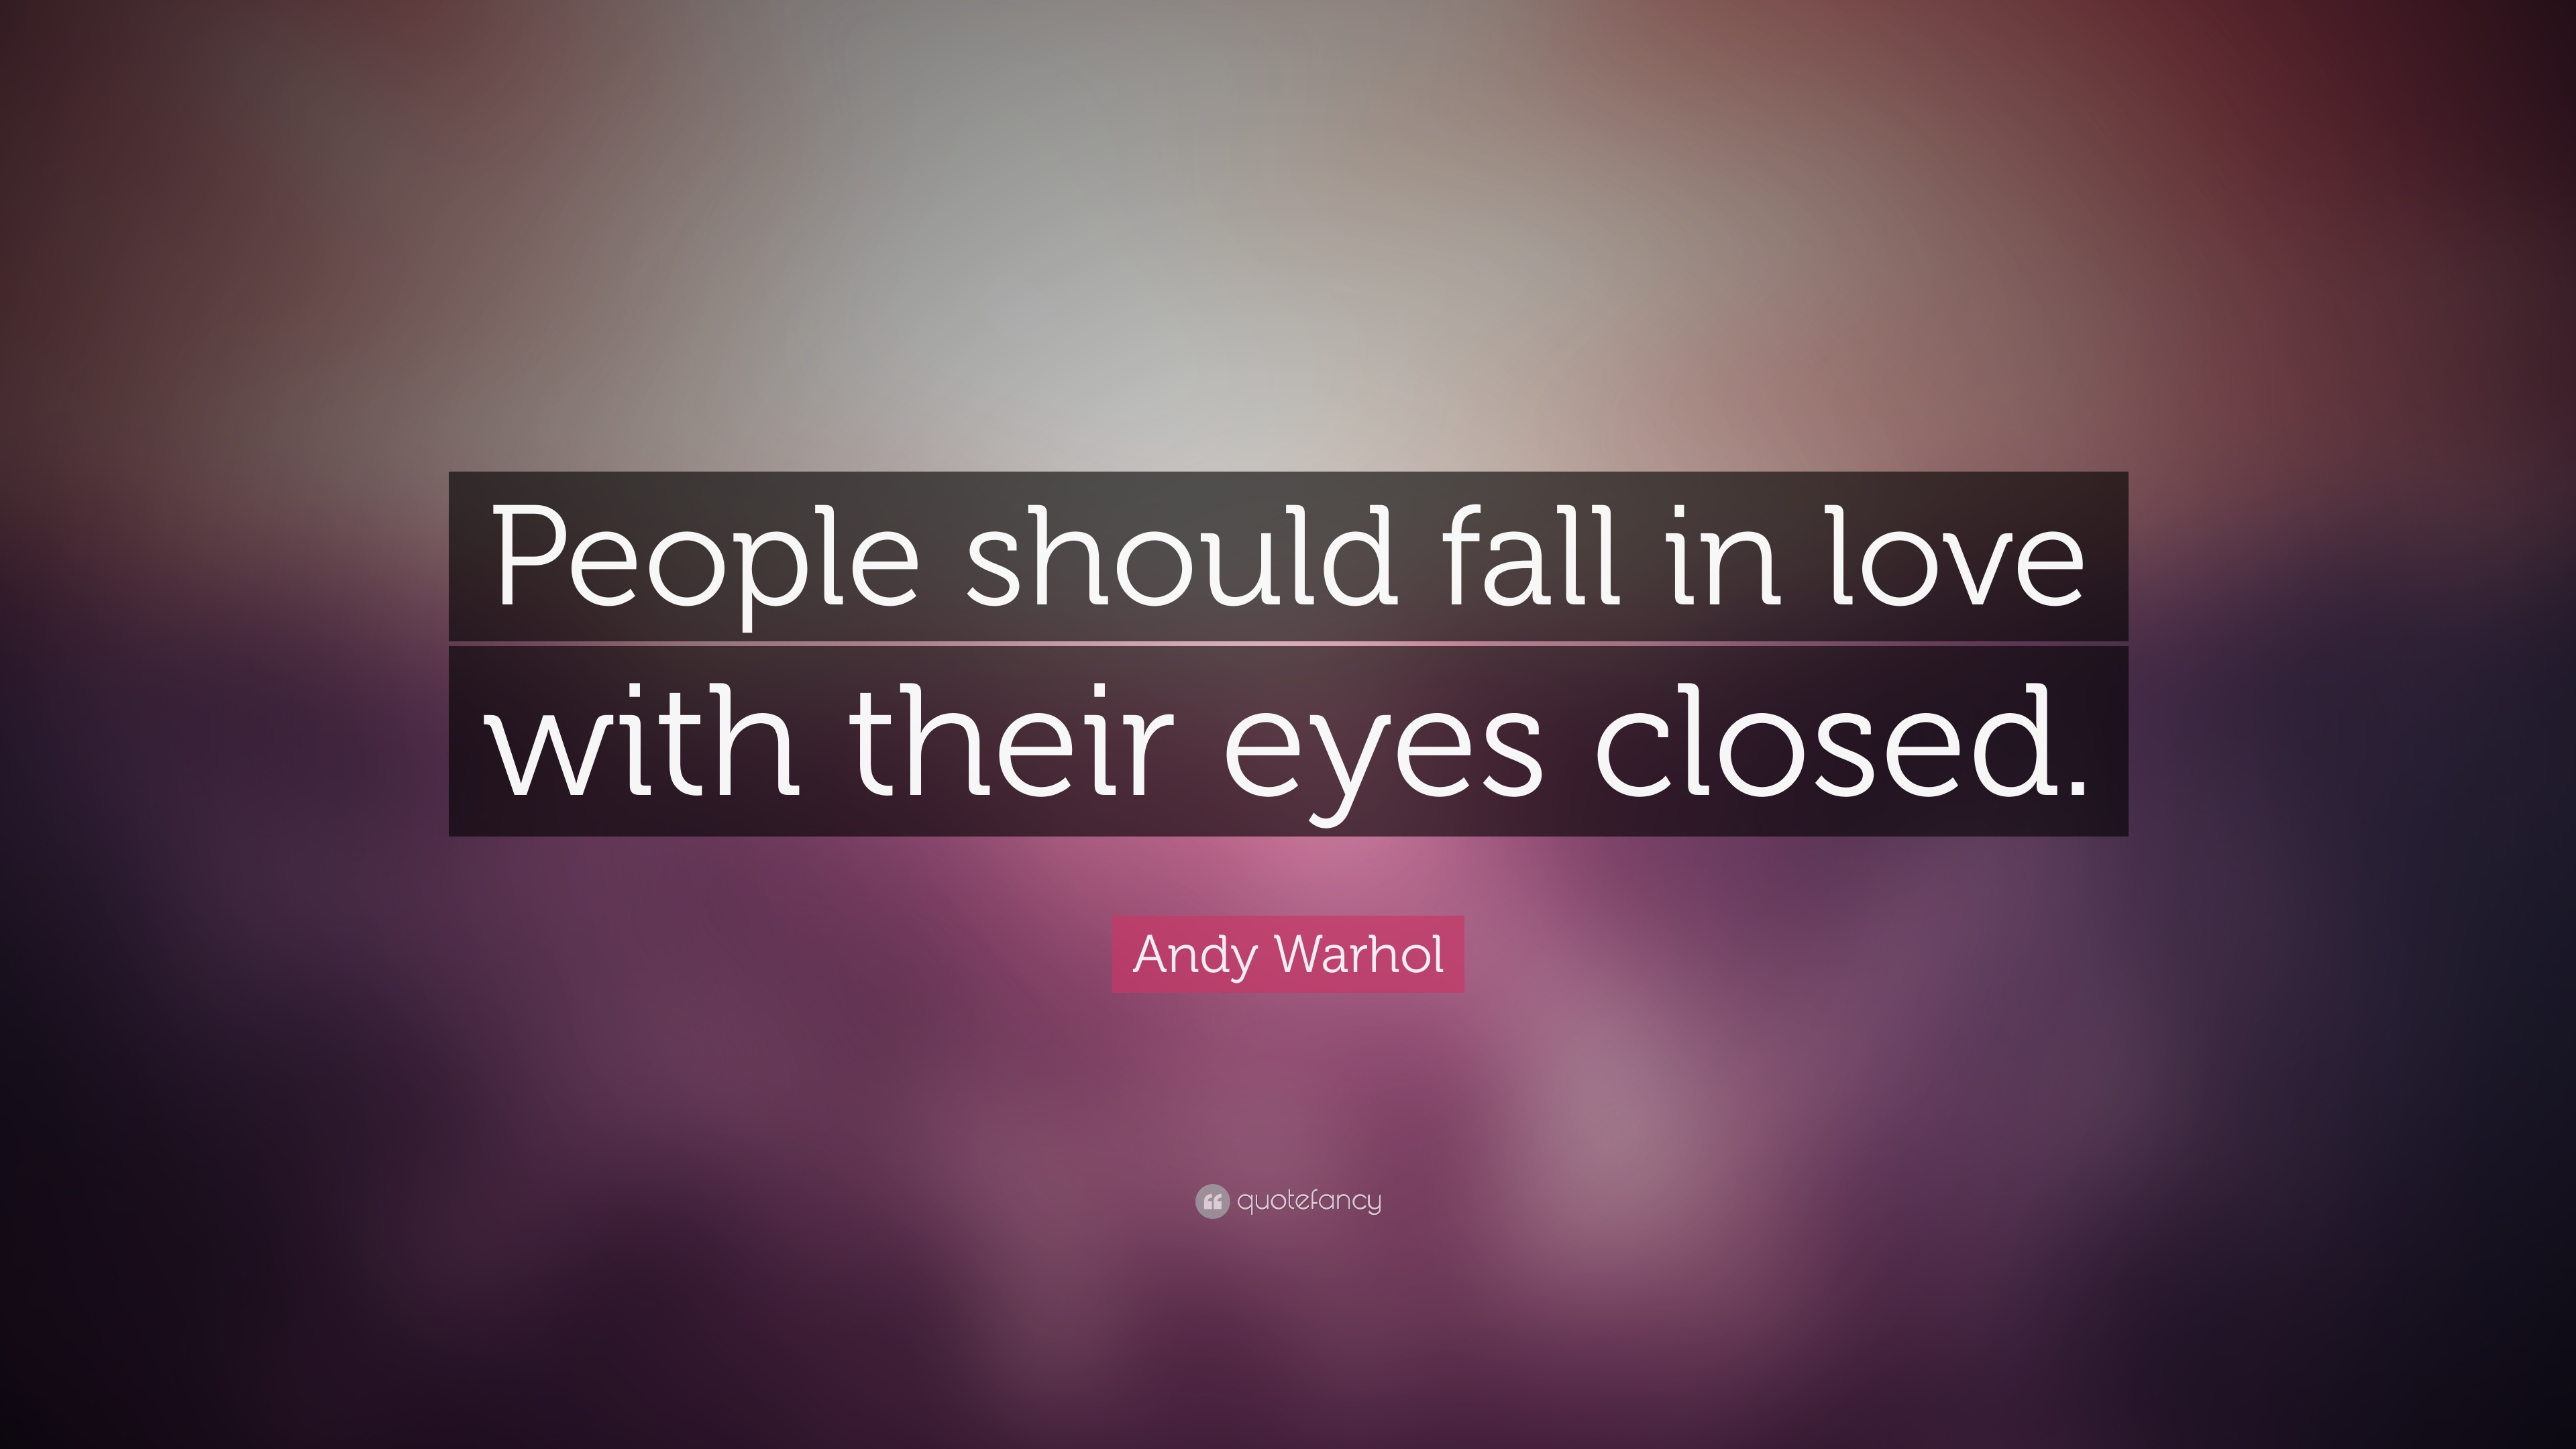 andy warhol quotes 100 wallpapers quotefancy